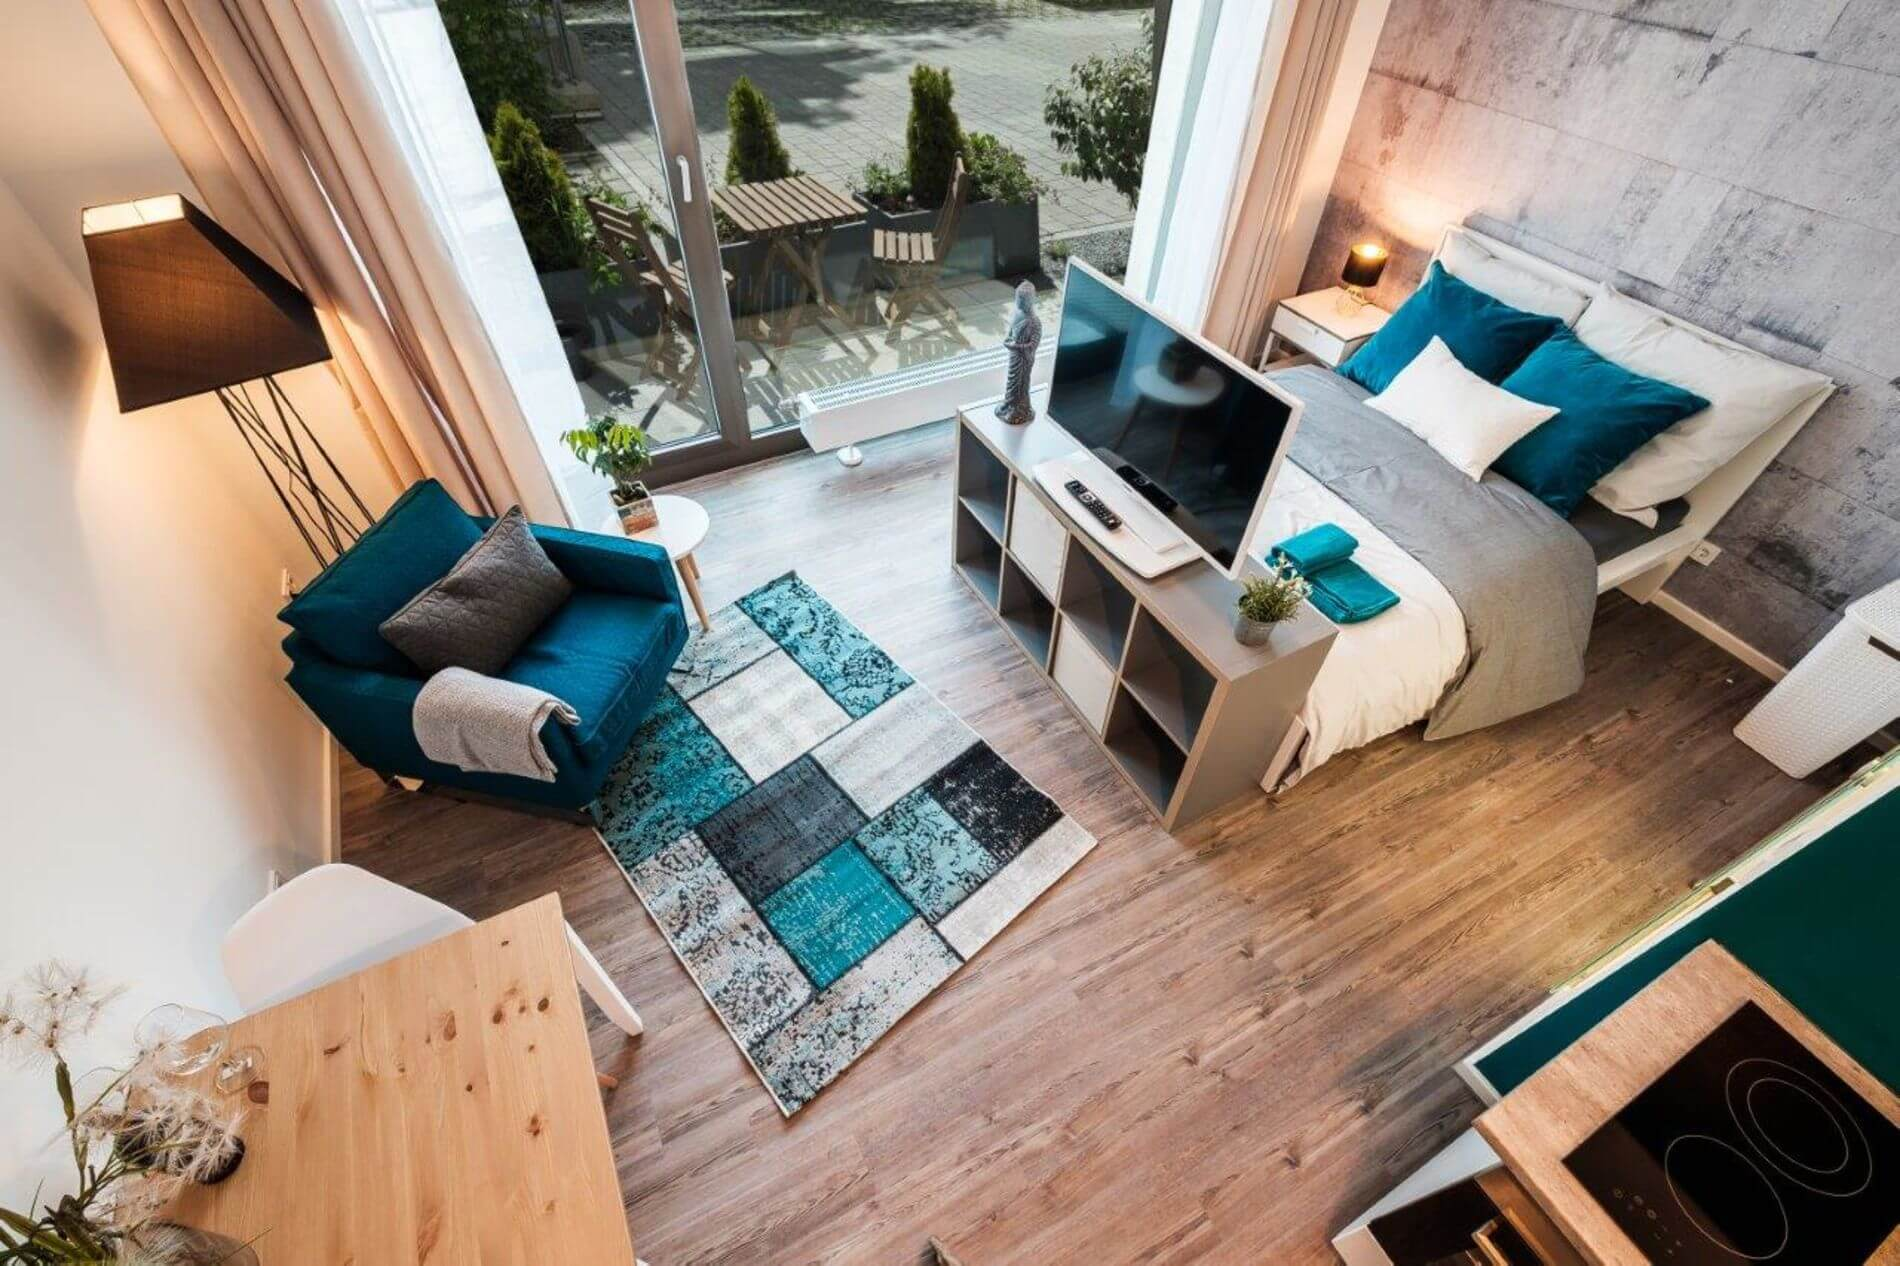 Modern loft with 1 bedroom in a residential area in Munich